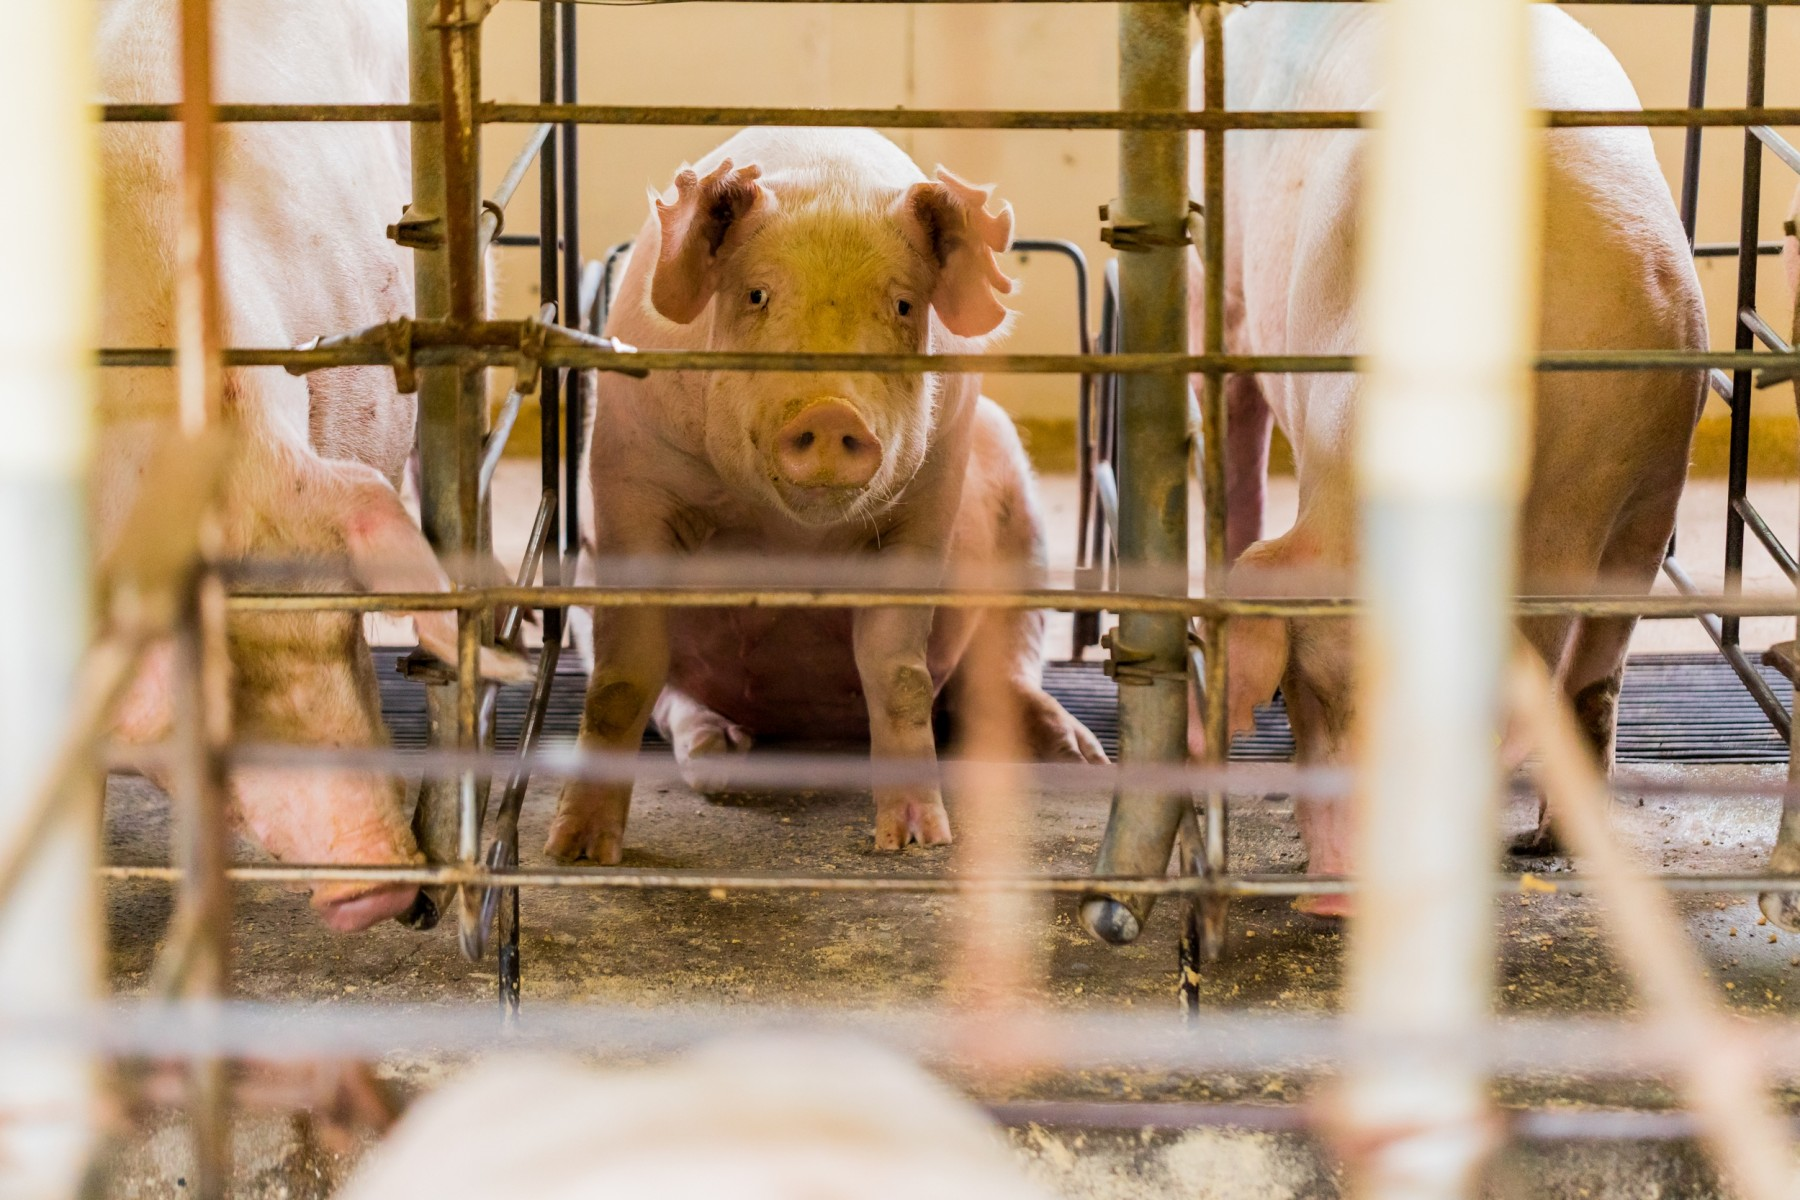 Pig looking out of her cage on a factory farm - World Animal Protection